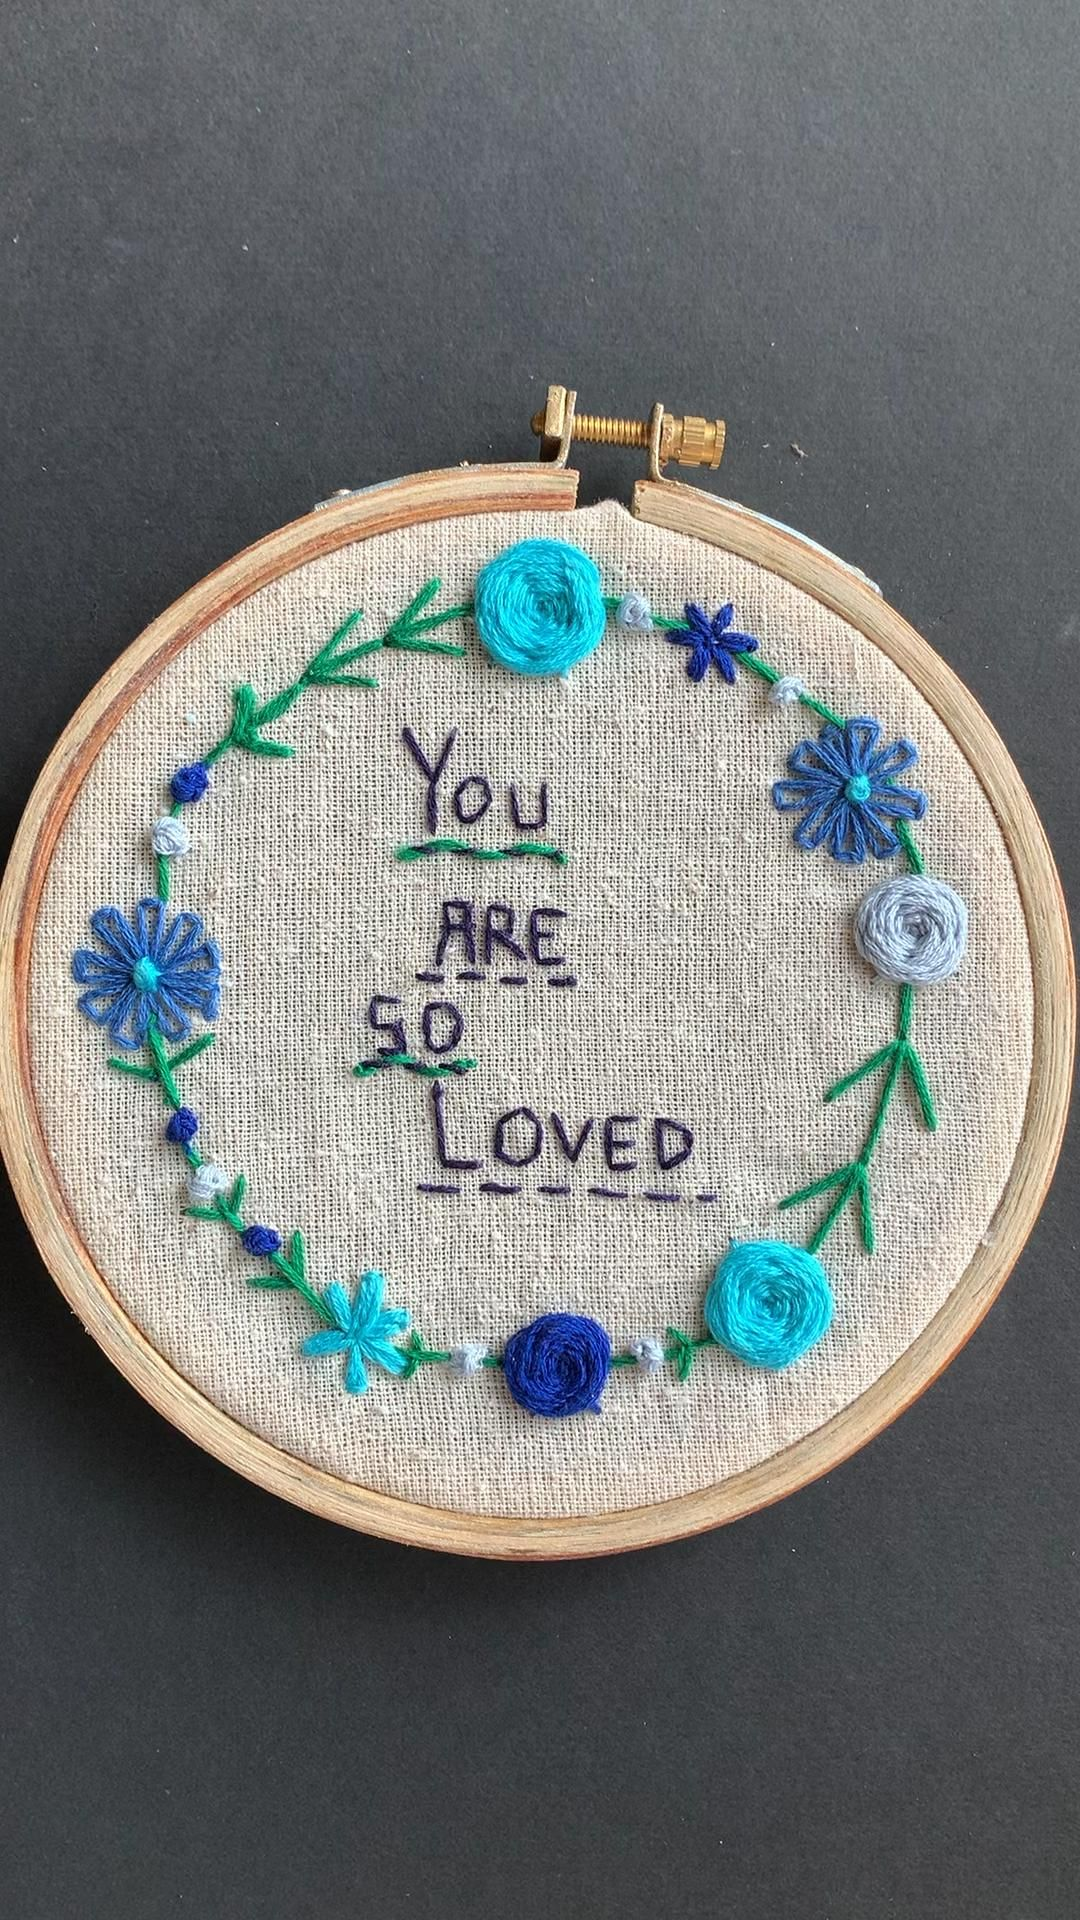 Positive love quote embroidery